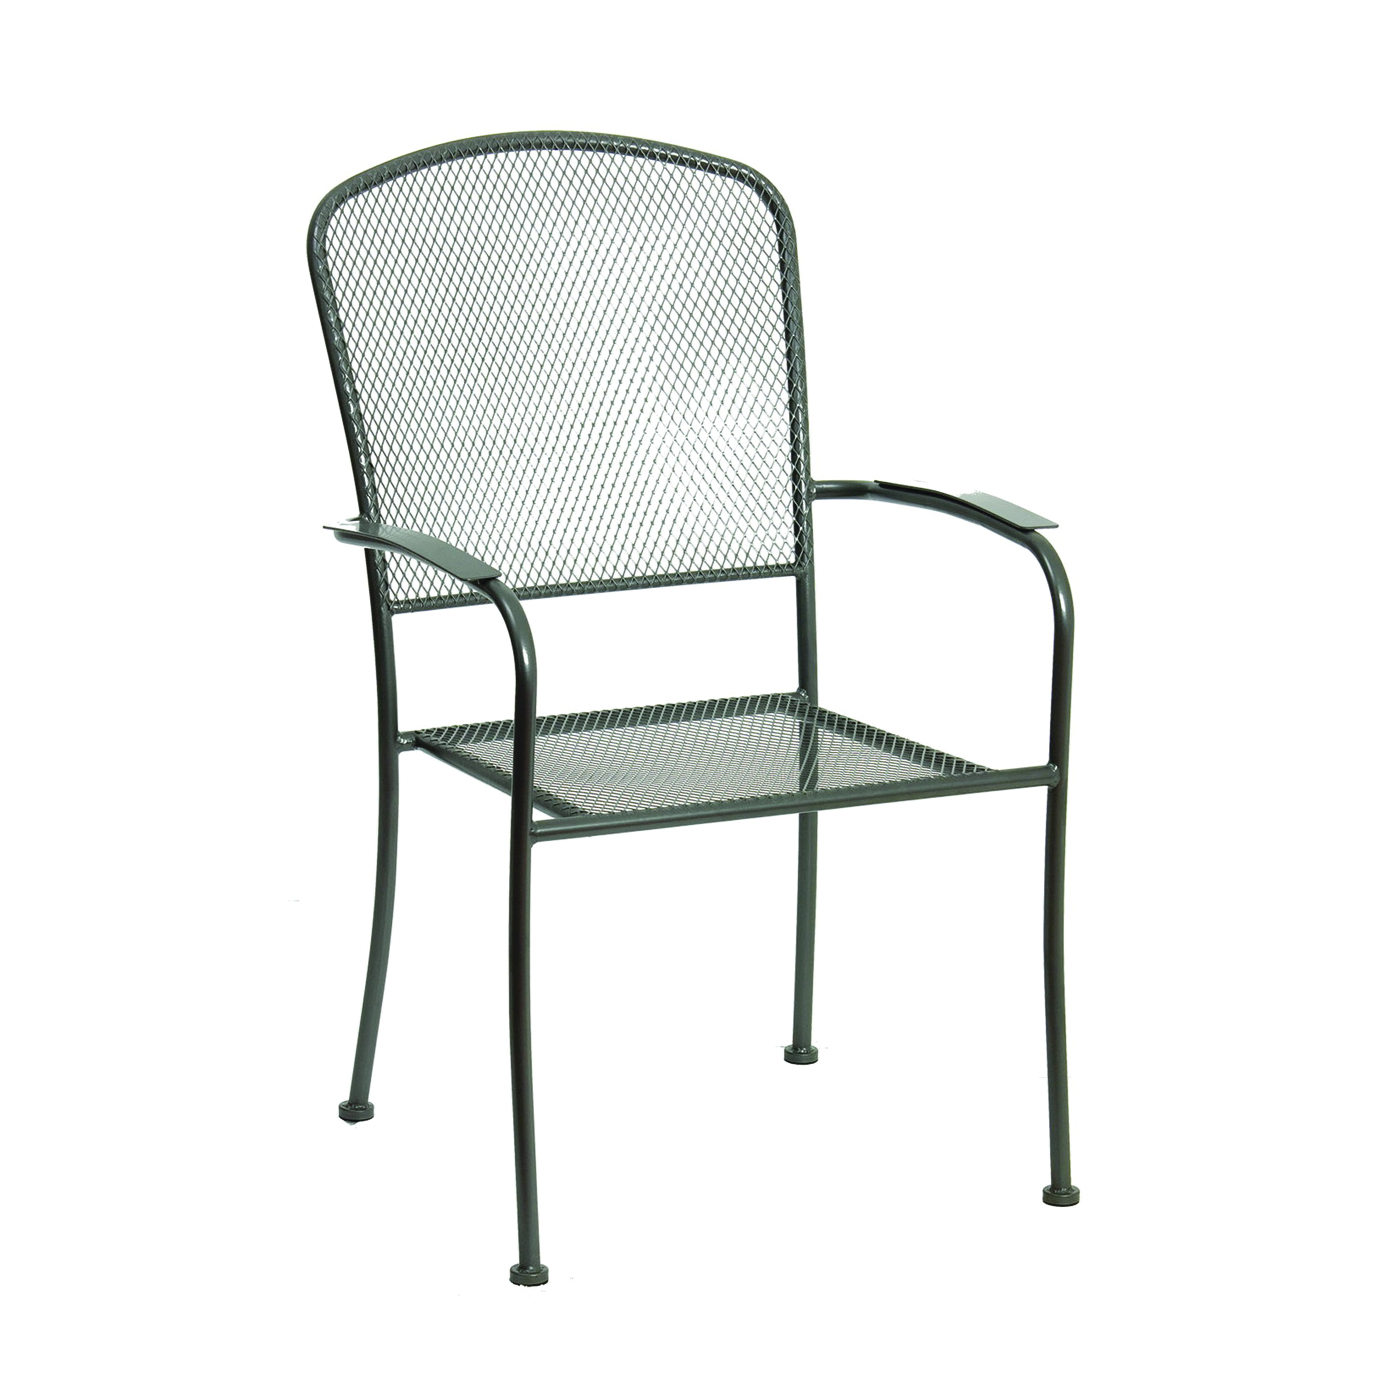 Picture of Seasonal Trends JYL-2077C Arlington Stackable Patio Chair with Mesh, 24-1/2 in W, 95-1/4 in D, 47-1/2 in H